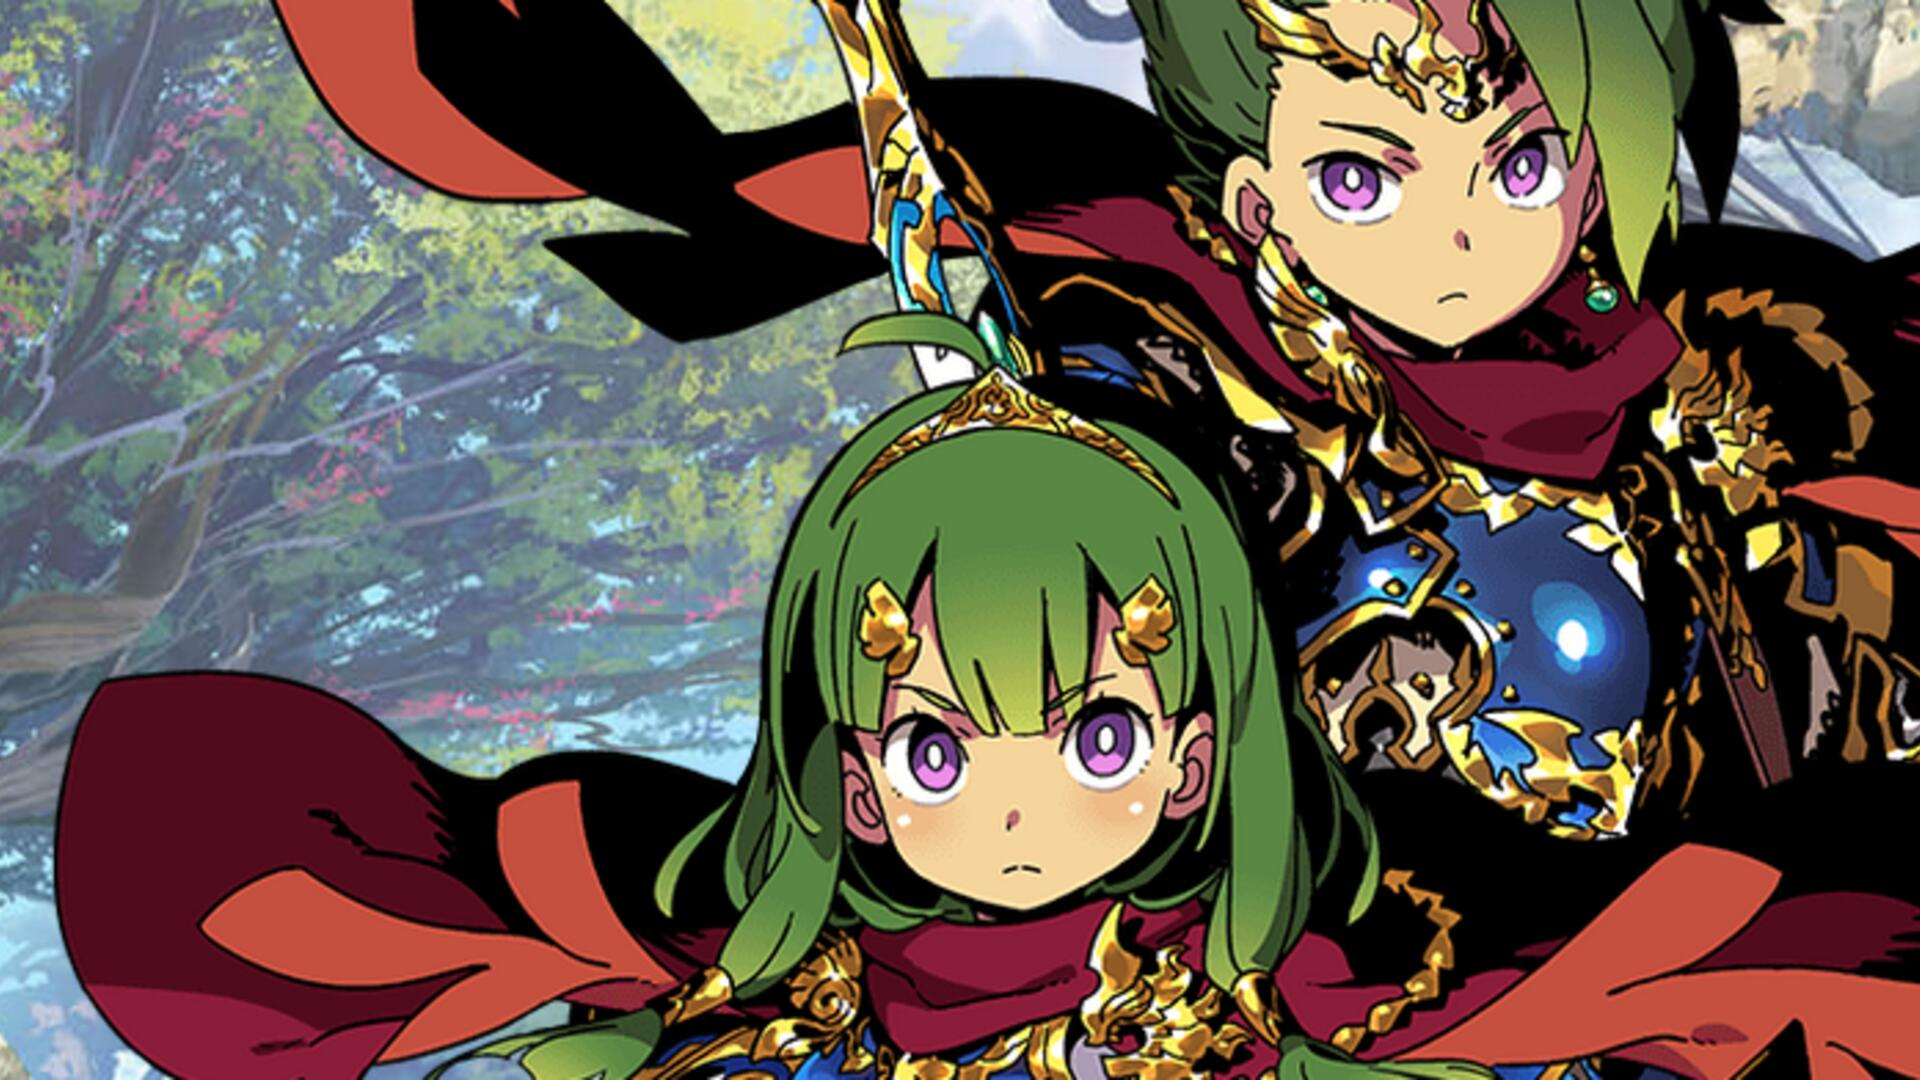 Etrian Odyssey Nexus Concludes the Franchise's 3DS Run When it Comes to America Next Year